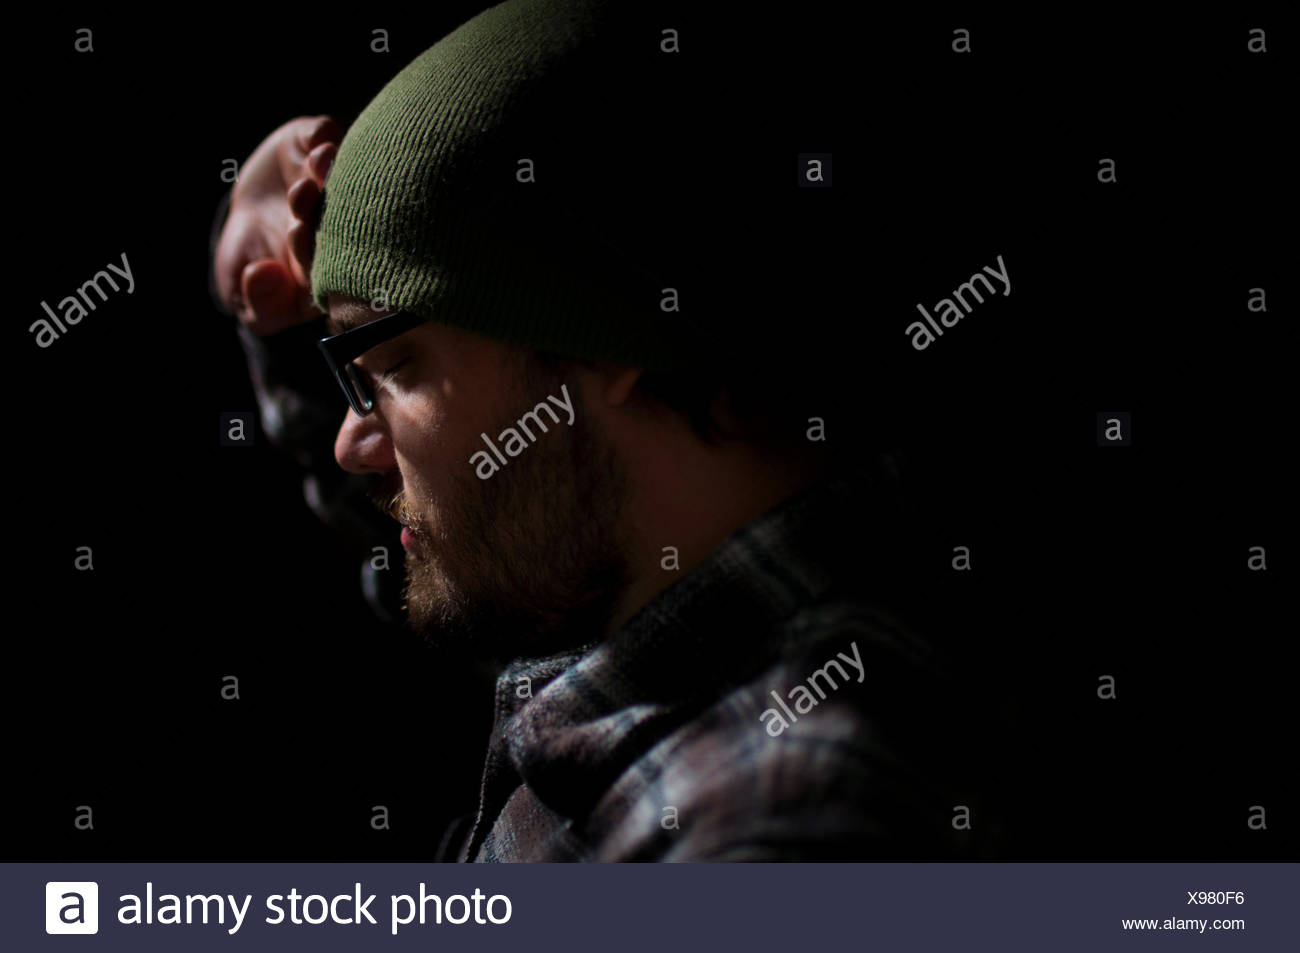 USA, Idaho, Boise National Forest, Long Creek Road, Profile of man in darkness - Stock Image